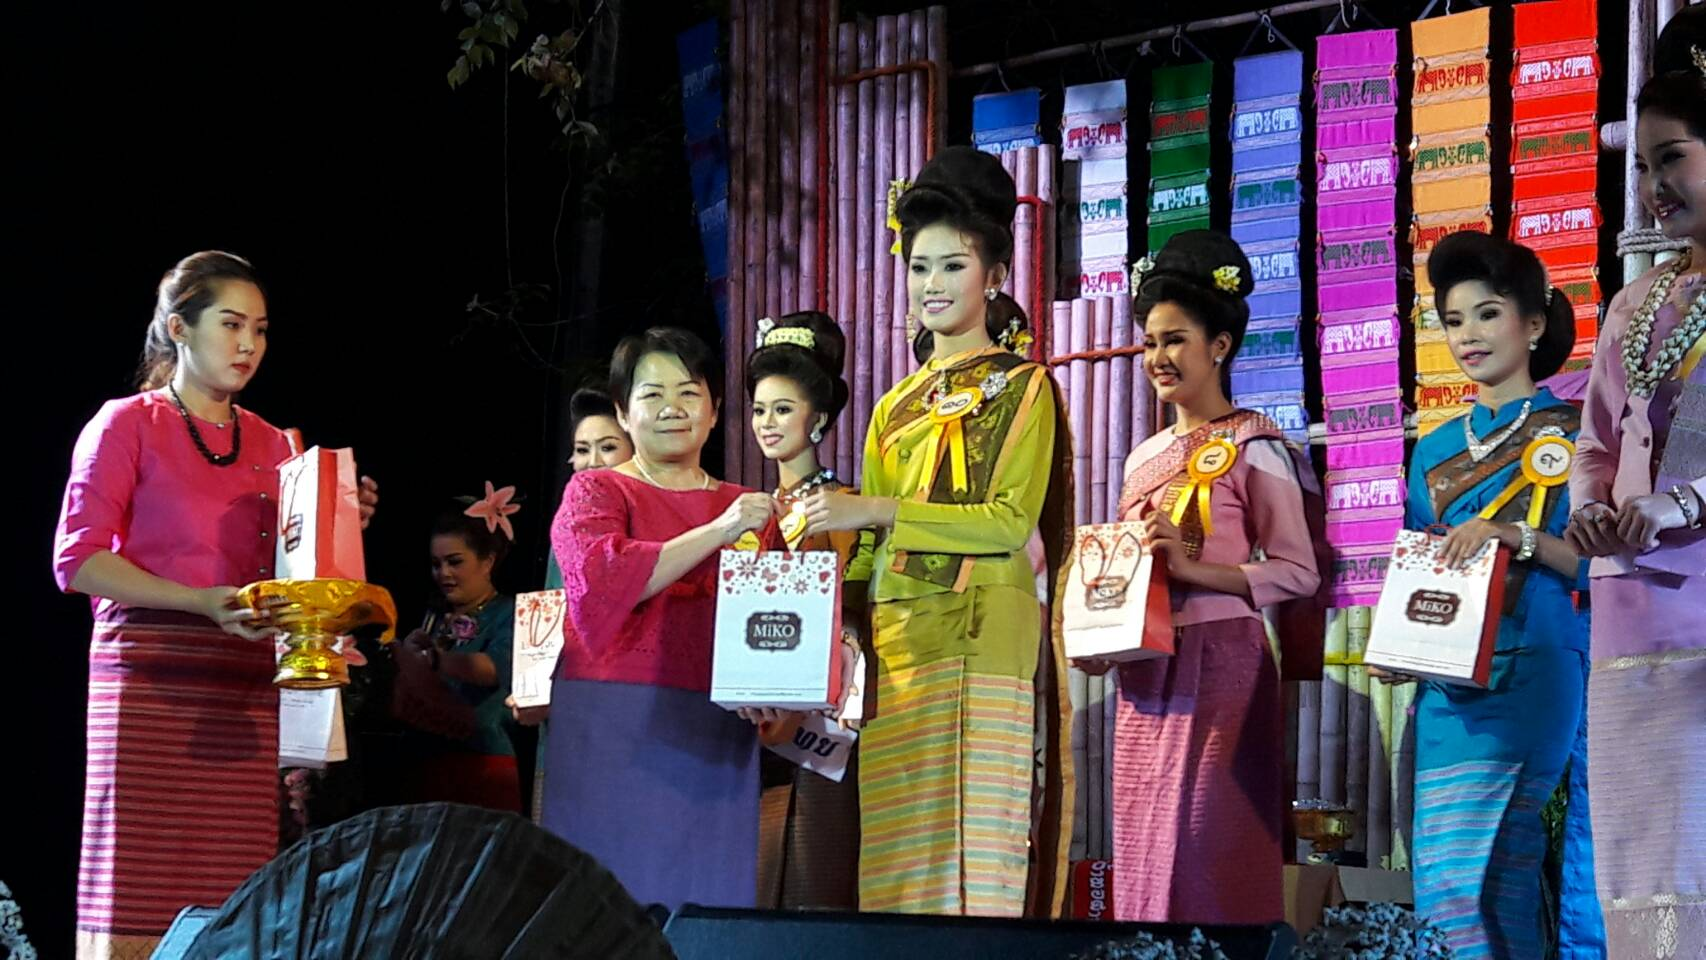 Miko gave the miko gift certificate to the finalists, Dae Yong Wai, the last 10 of them.